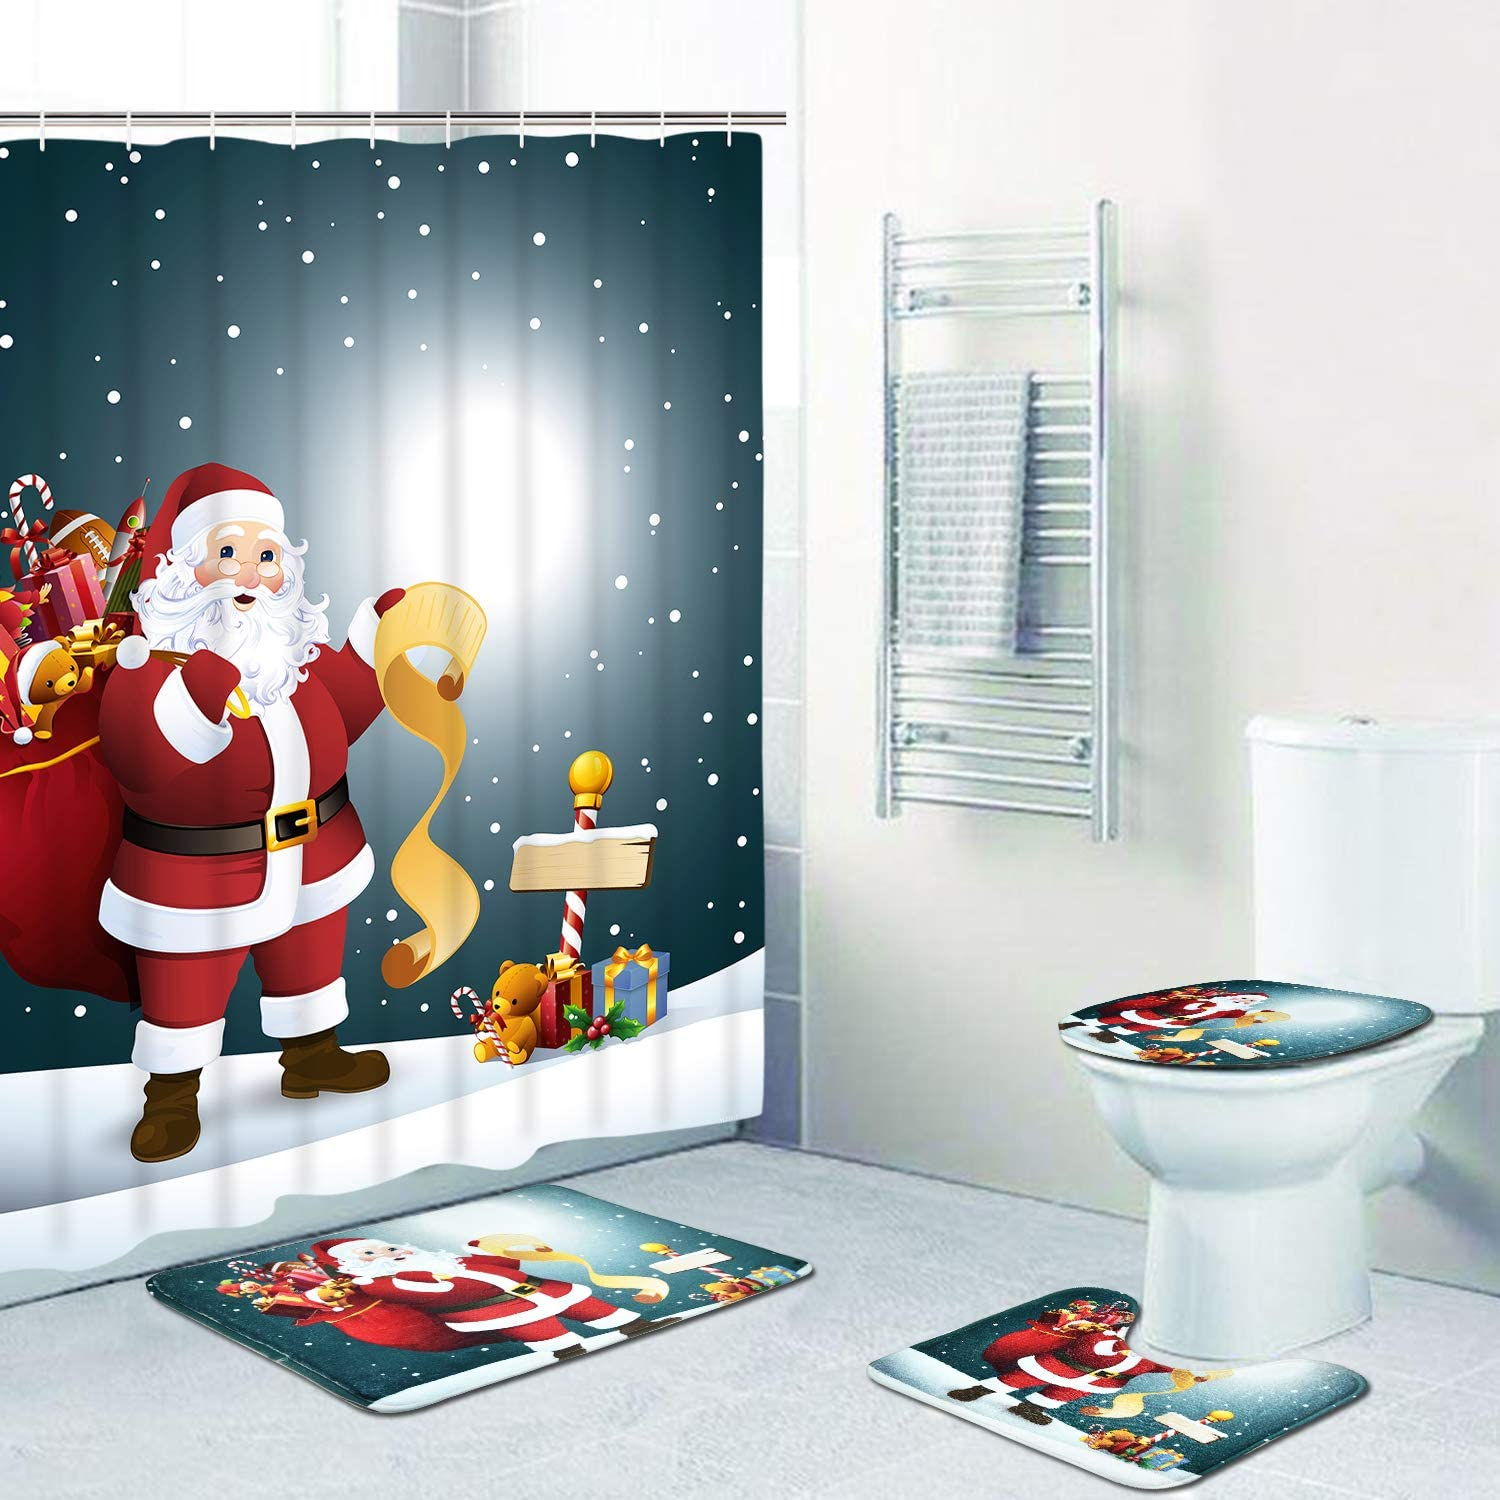 Amazon Com 4 Pcs Merry Christmas Shower Curtain Sets With Non Slip Rug Toilet Lid Cover And Bath Mat Santa Moon Snow Shower Curtain With 12 Hooks For Christmas Decoration Home Kitchen